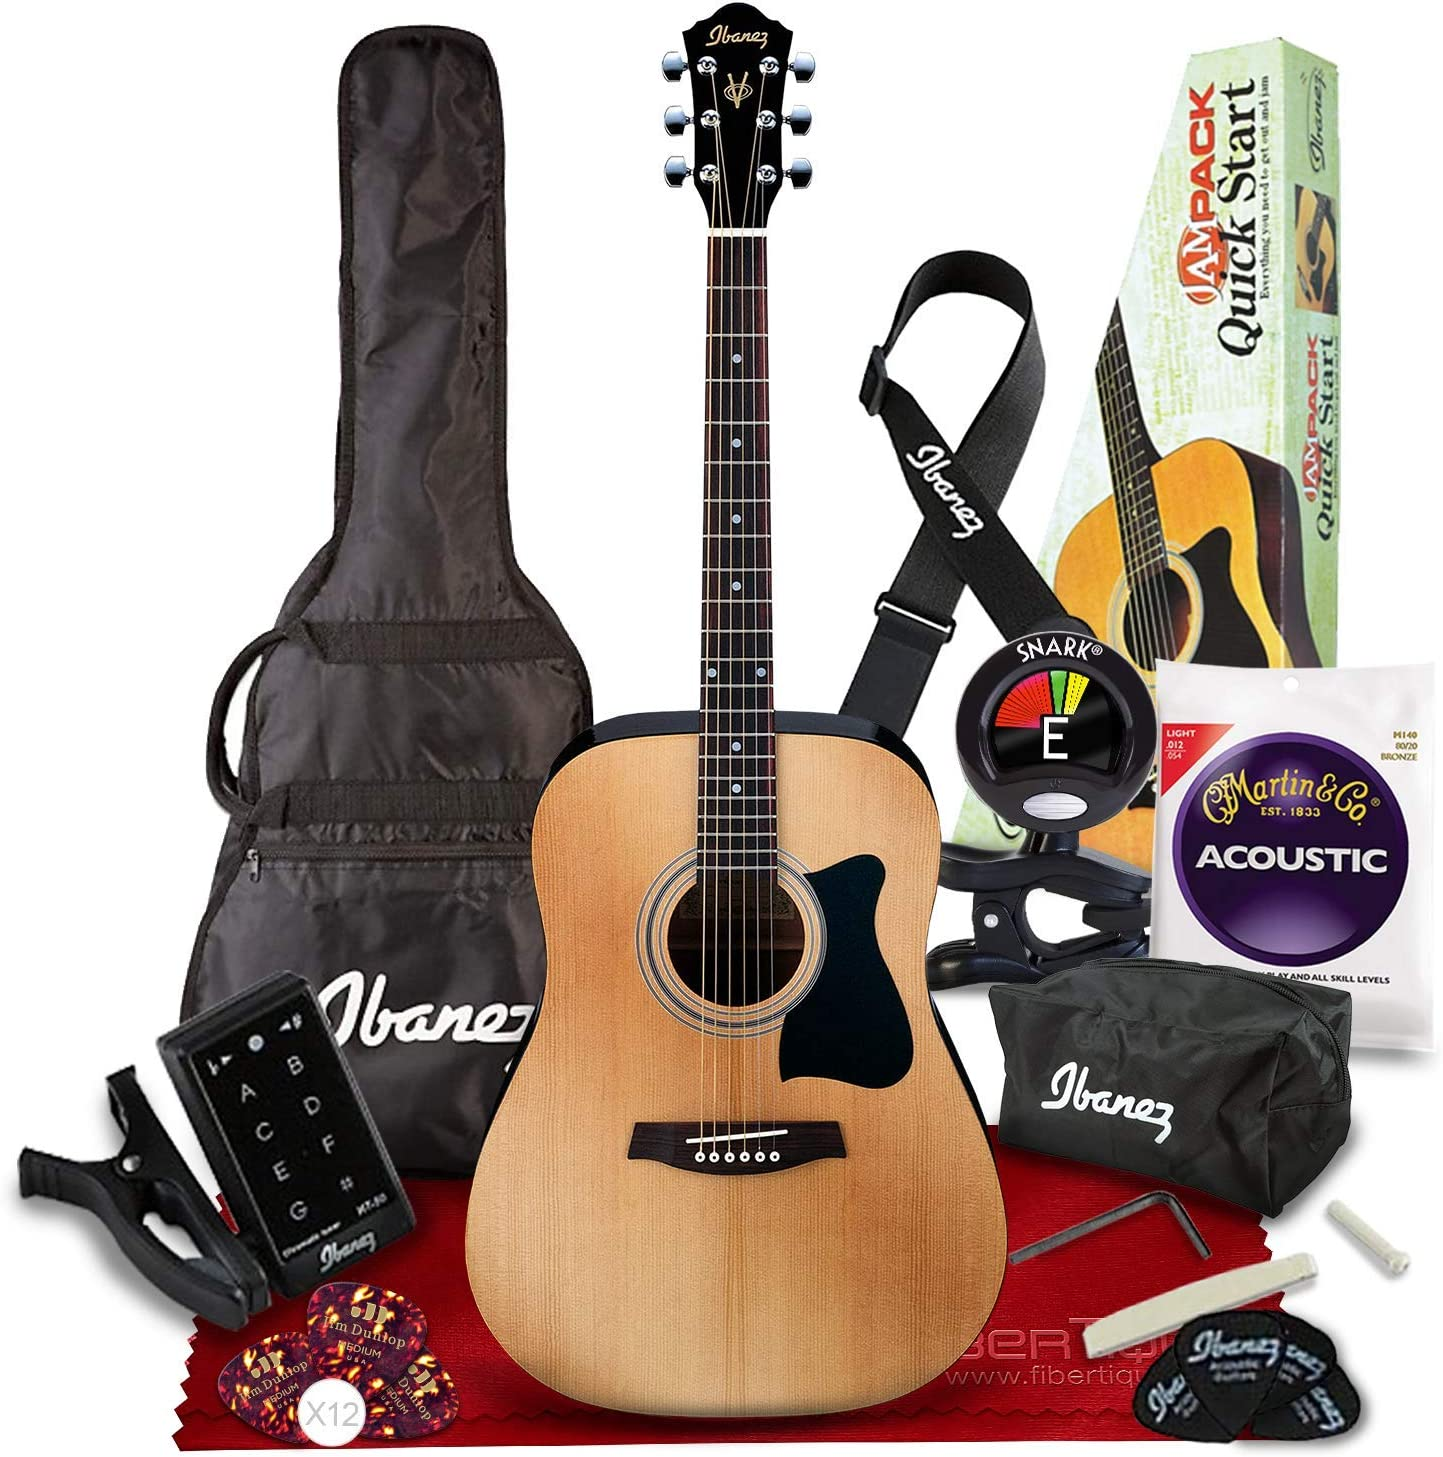 Ibanez IJV50 JAMPACK 6 String Acoustic Pack Natural 爆買いセール Guitar いつでも送料無料 with